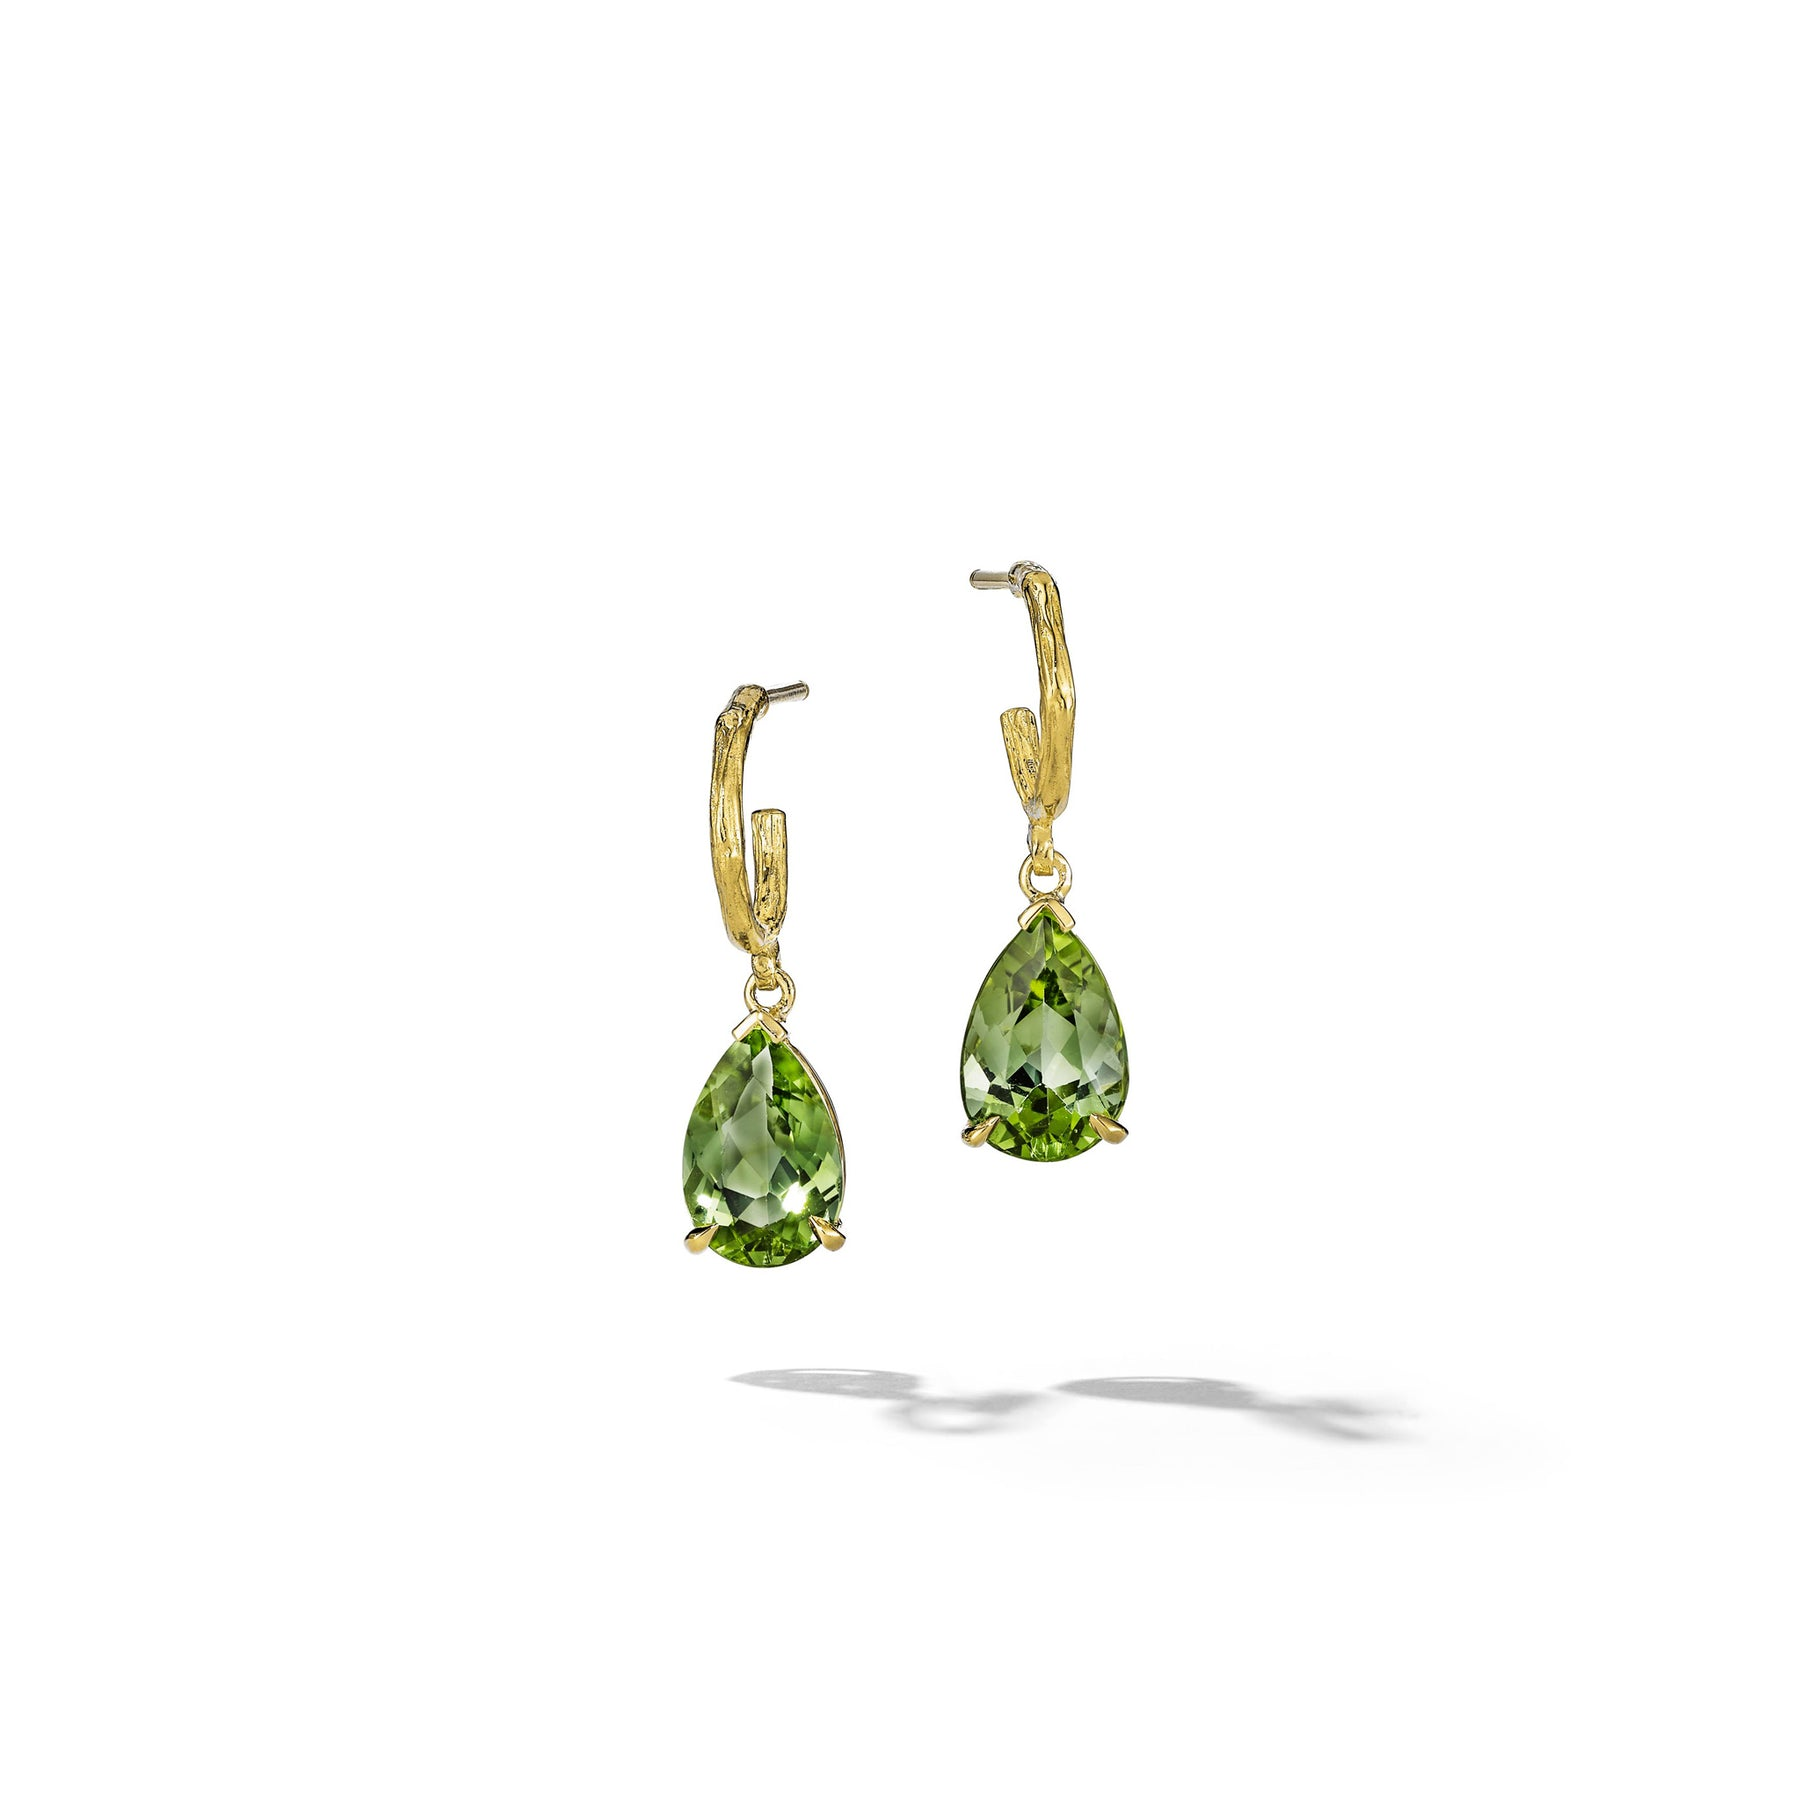 Wonderland-Green-Tourmaline-Earrings_18k Yellow Gold